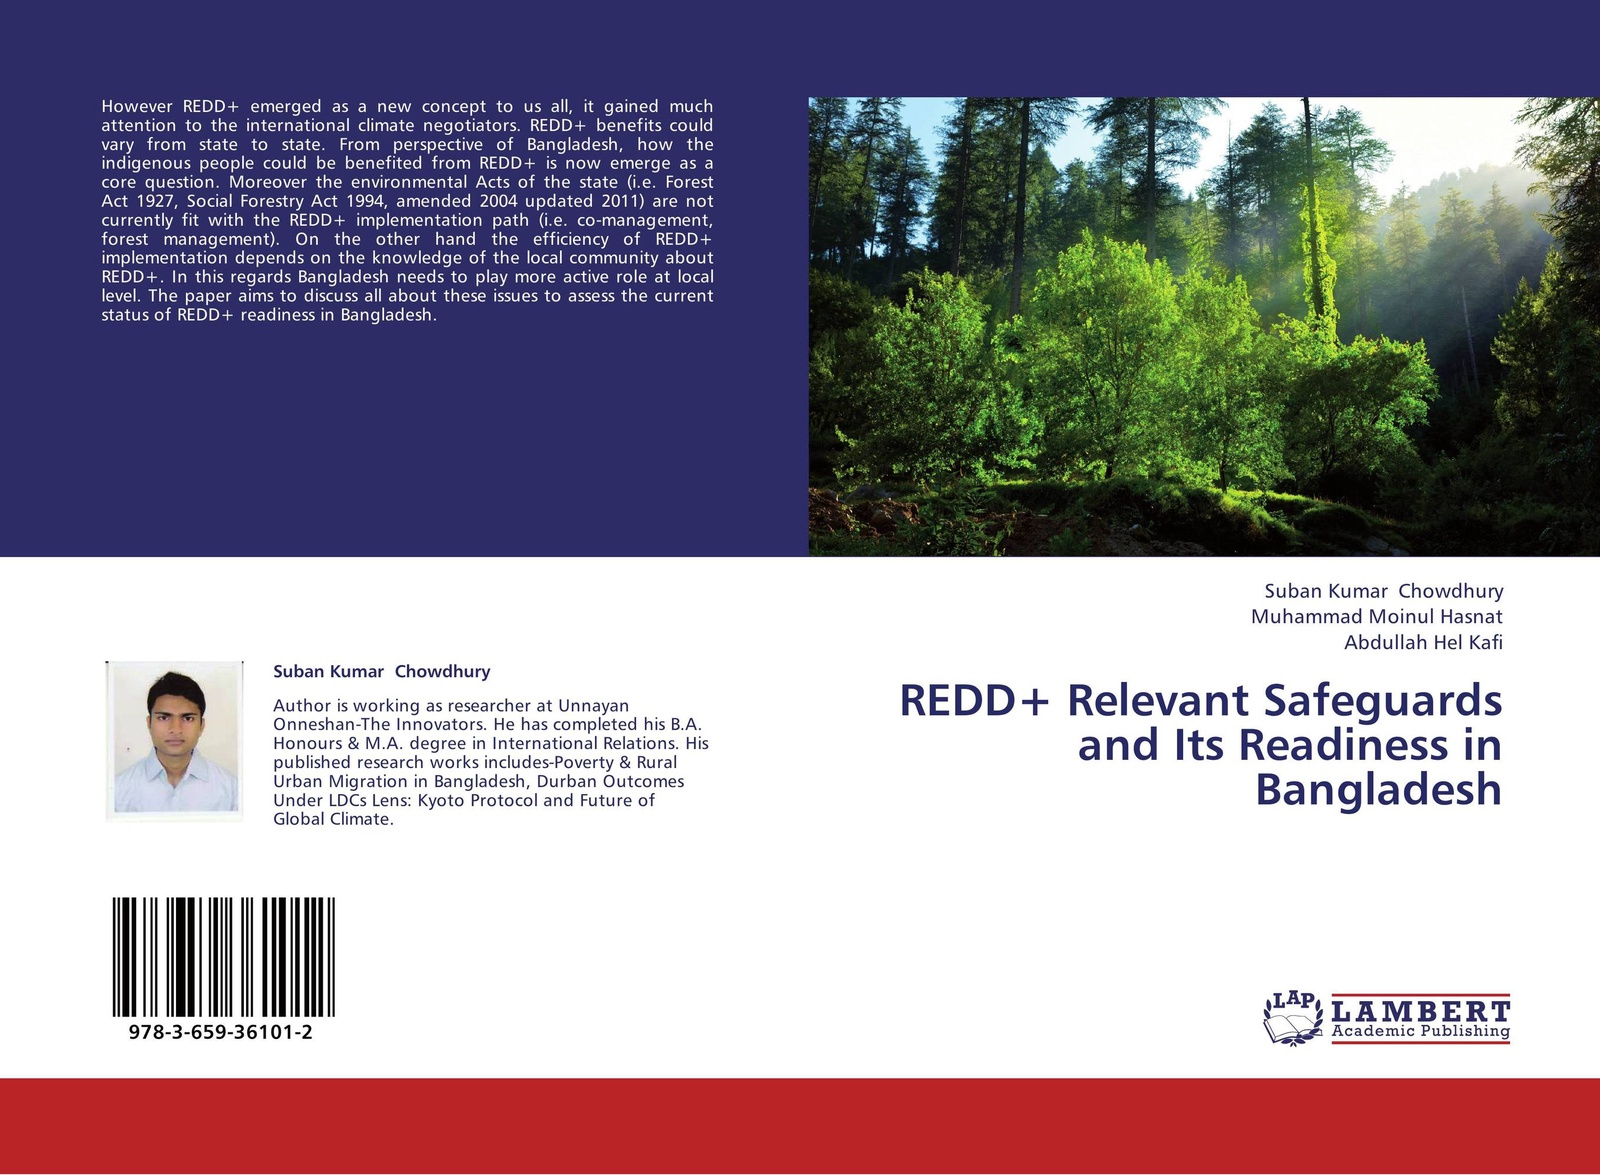 Suban Kumar Chowdhury,Muhammad Moinul Hasnat and Abdullah Hel Kafi REDD+ Relevant Safeguards and Its Readiness in Bangladesh недорго, оригинальная цена